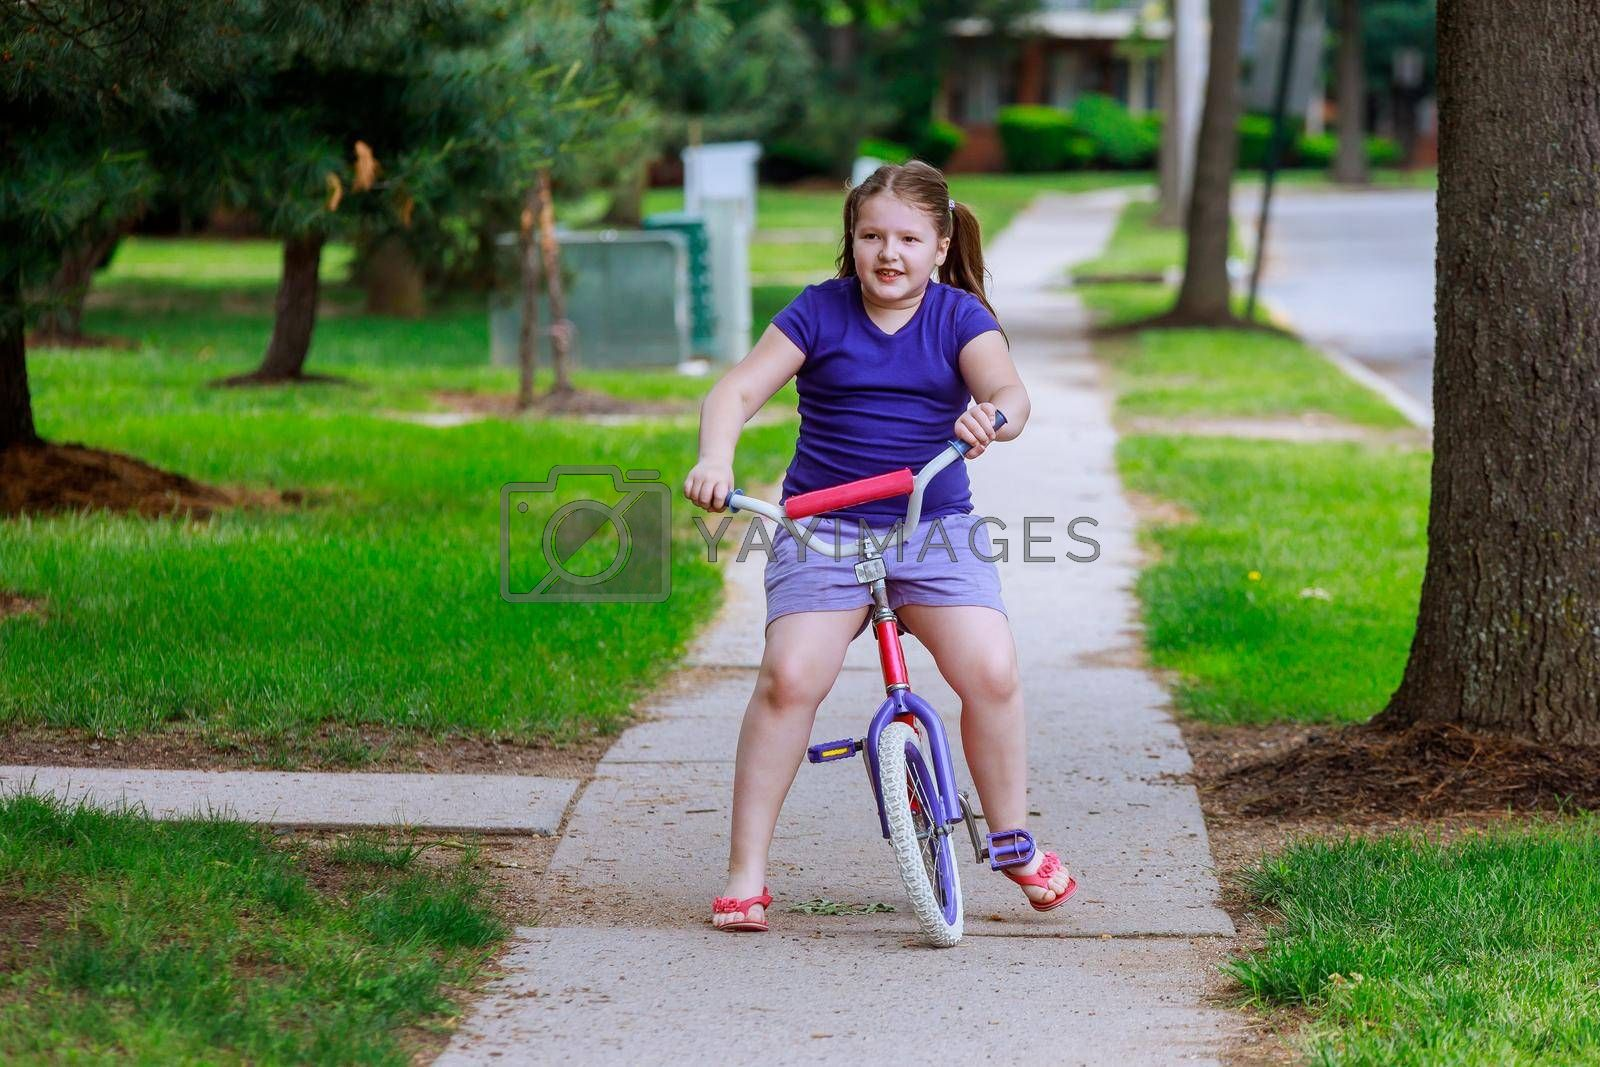 Beautiful little girl smiling is riding the bicycle in the park on a city